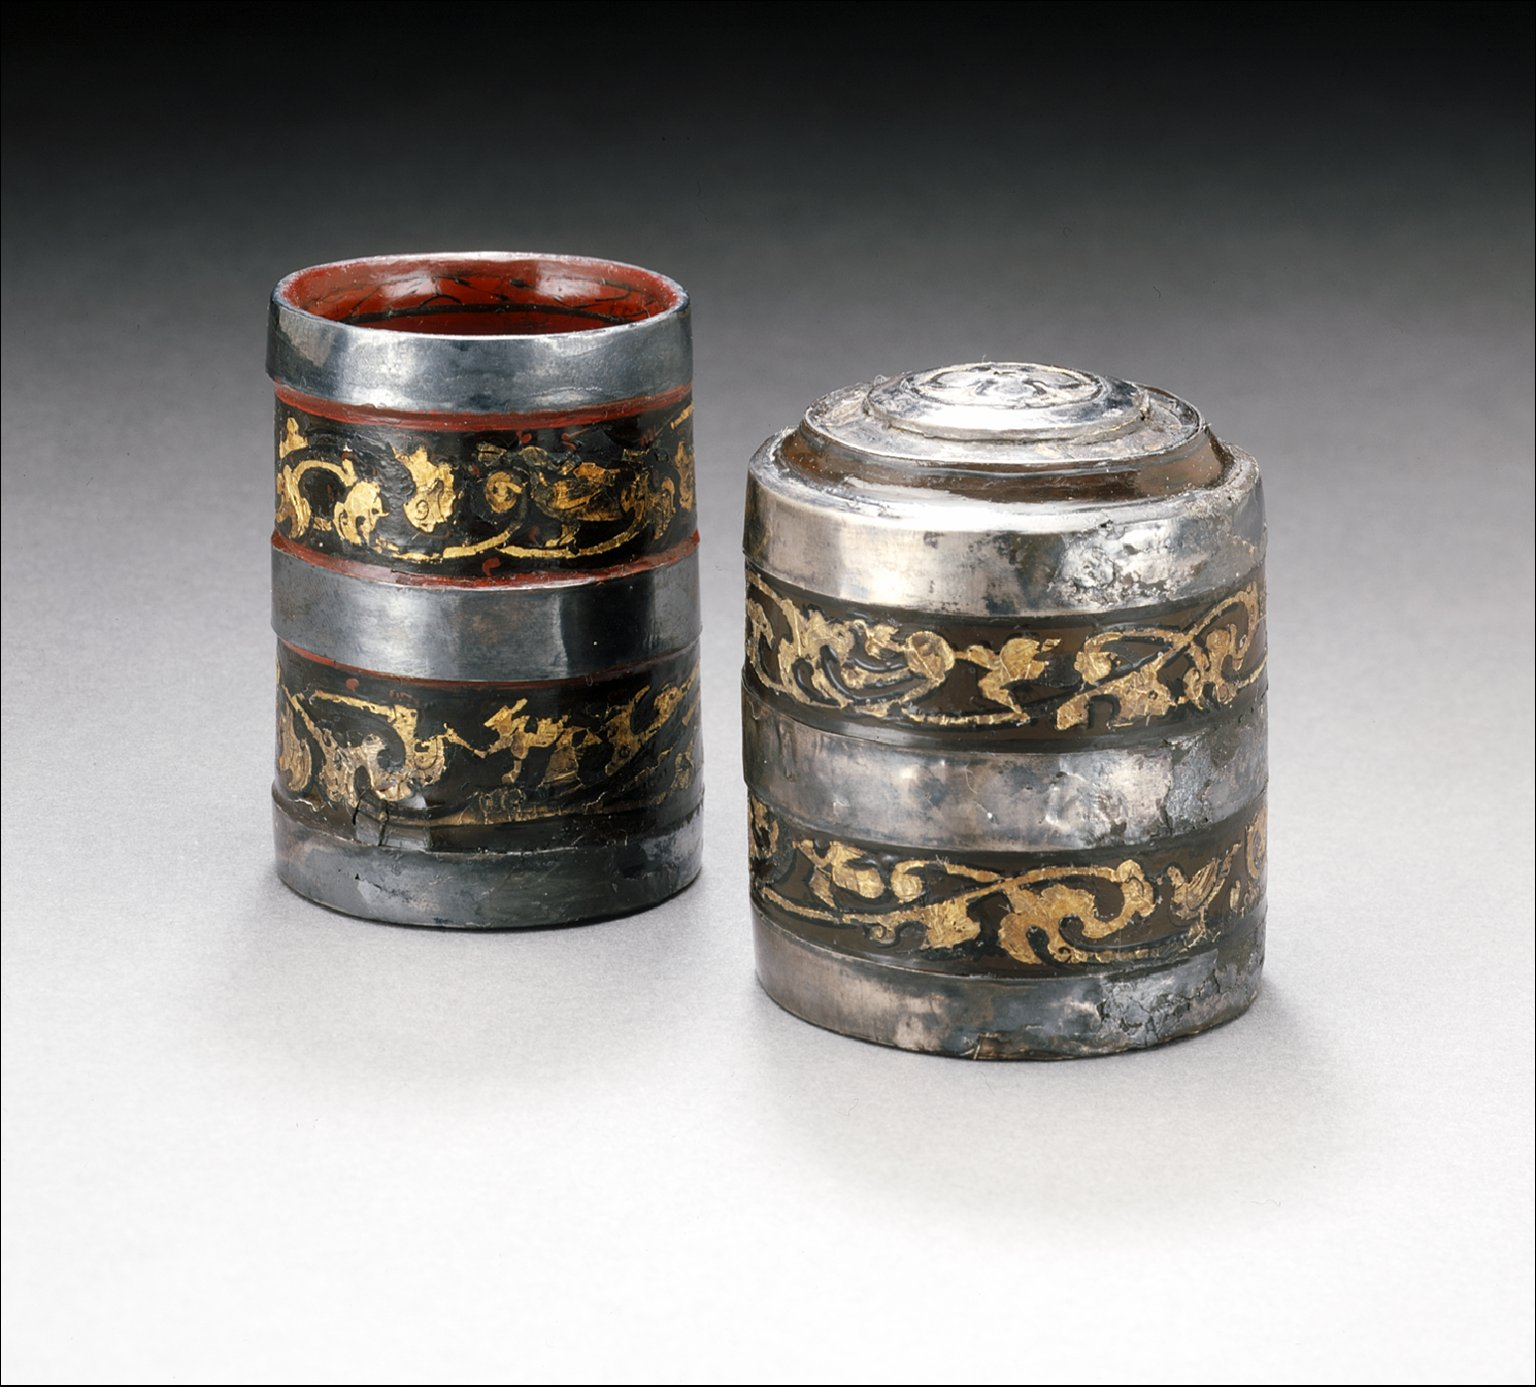 Small Round Lidded Cosmetic Box (Lian) with Scrolling Clouds and Birds